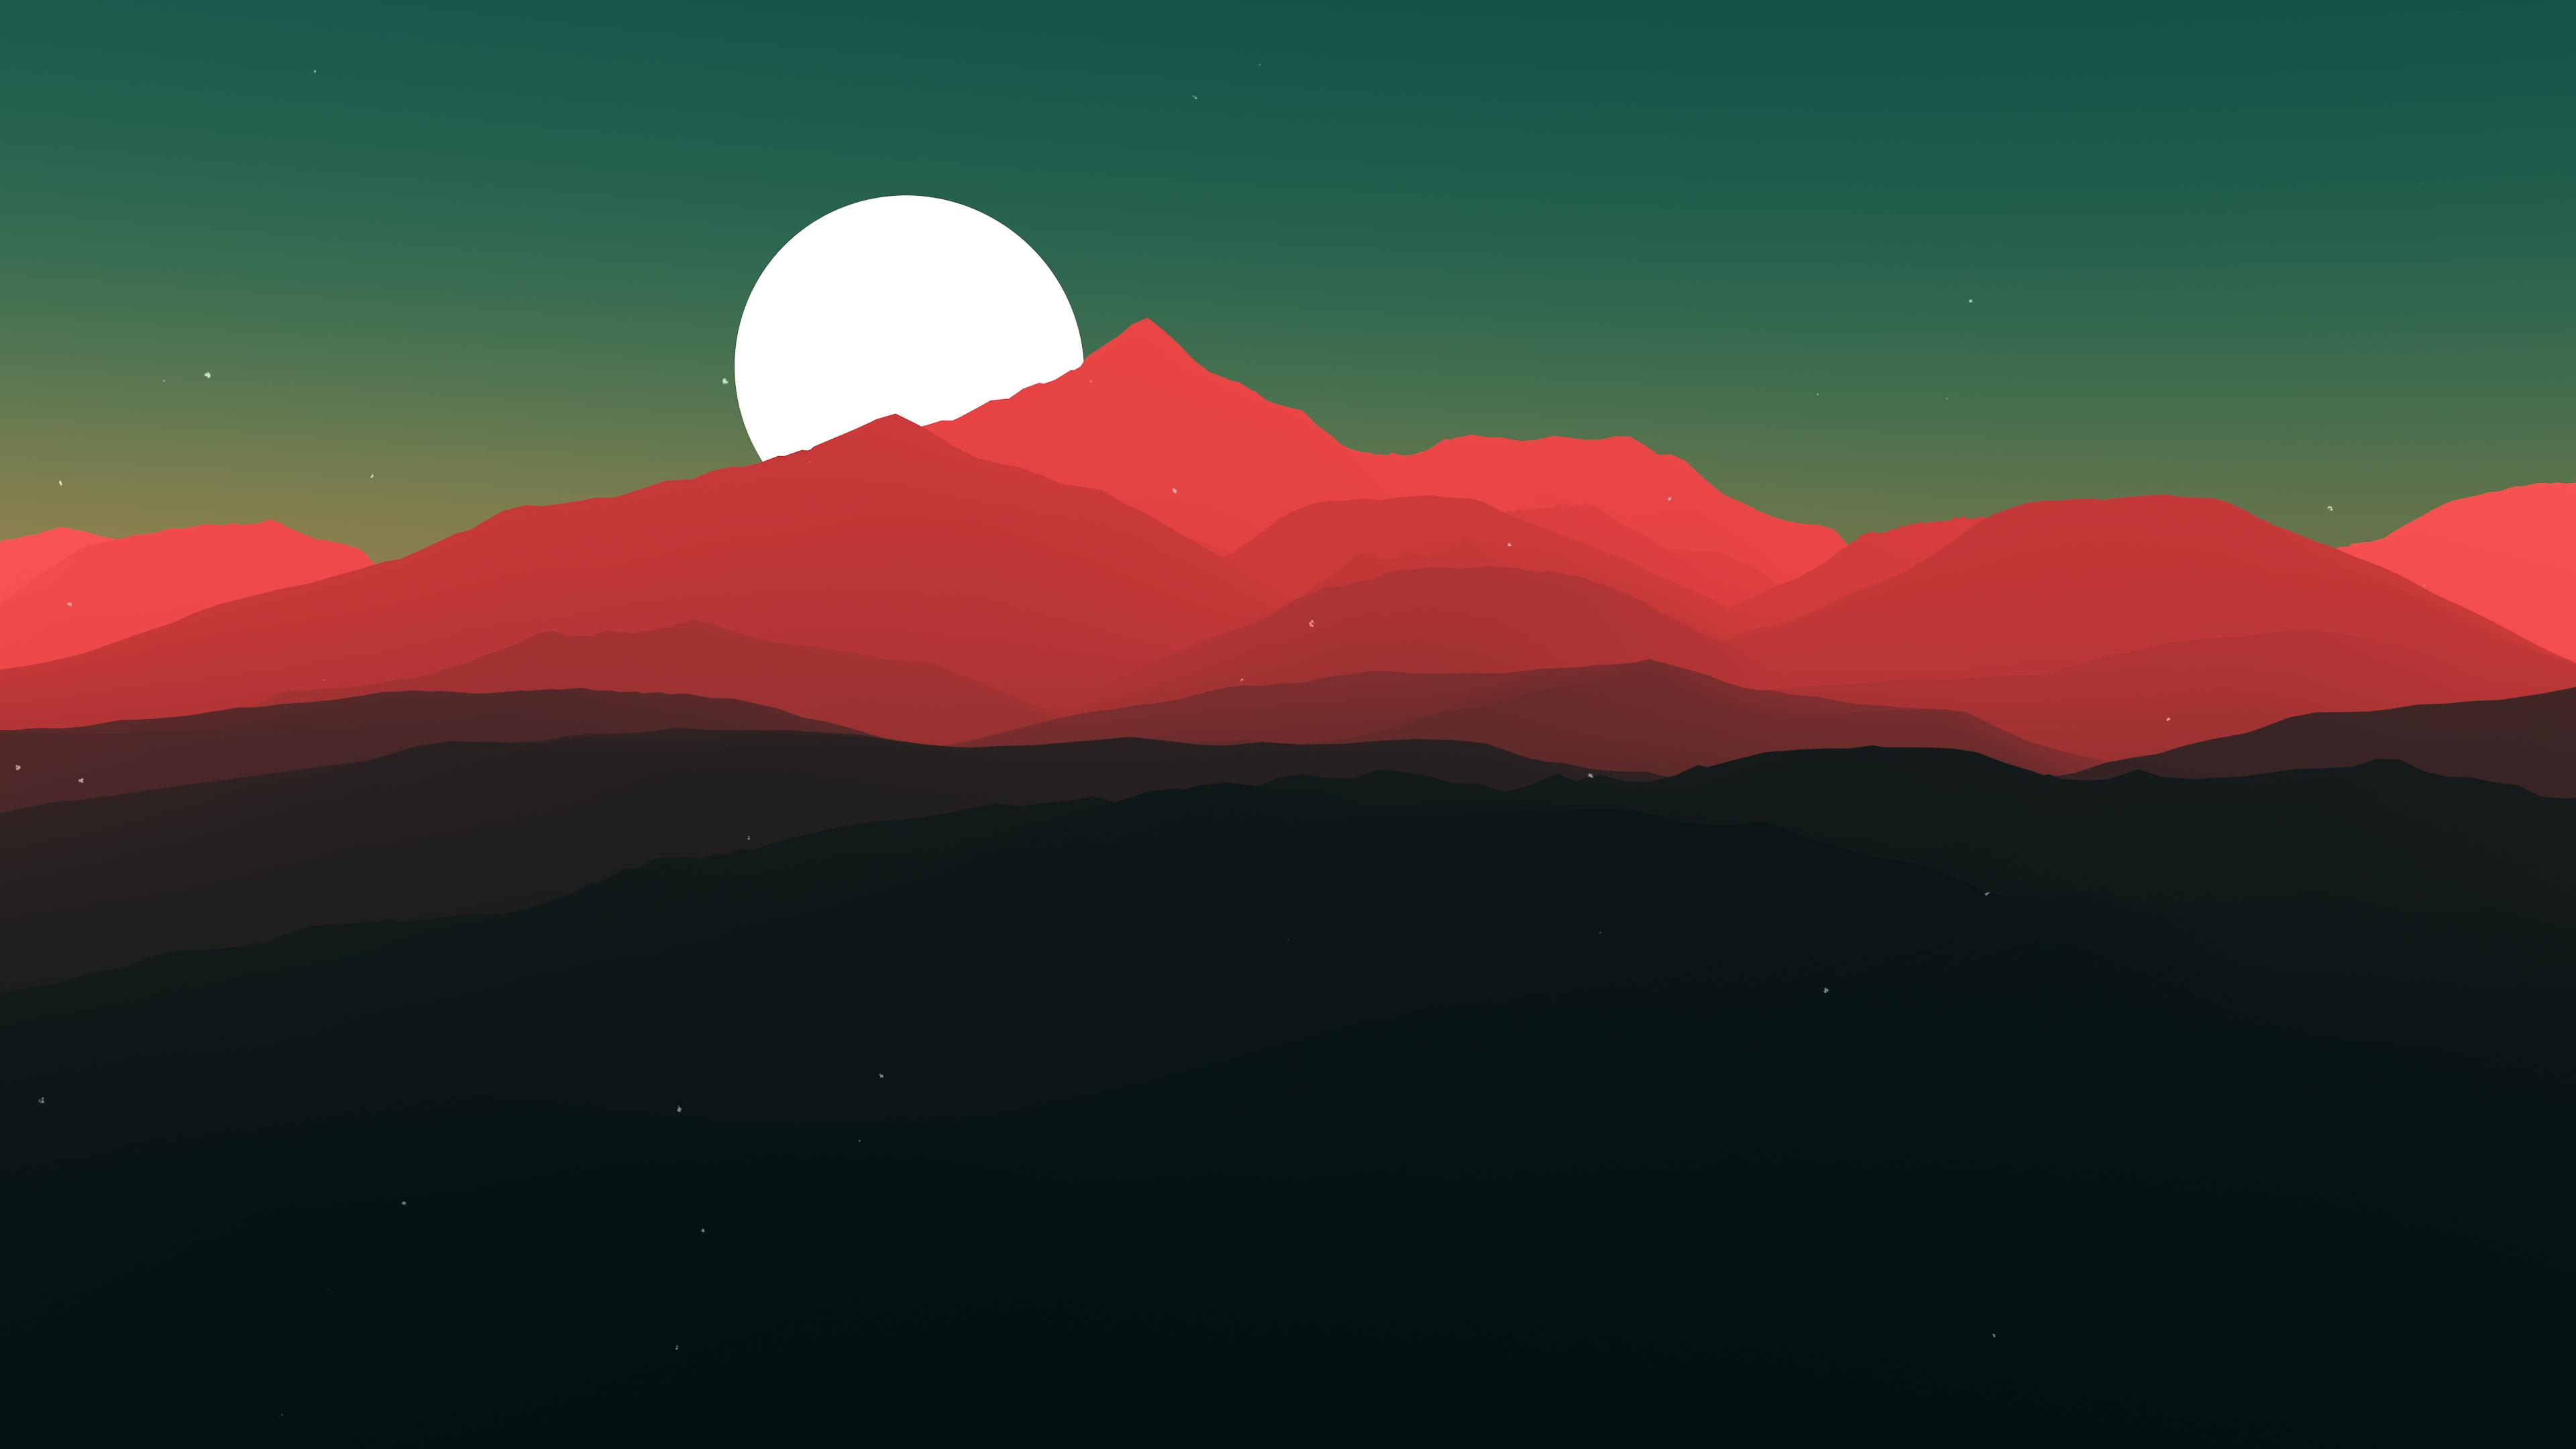 Minimalist landscape hd 4k wallpaper for Minimal artiste